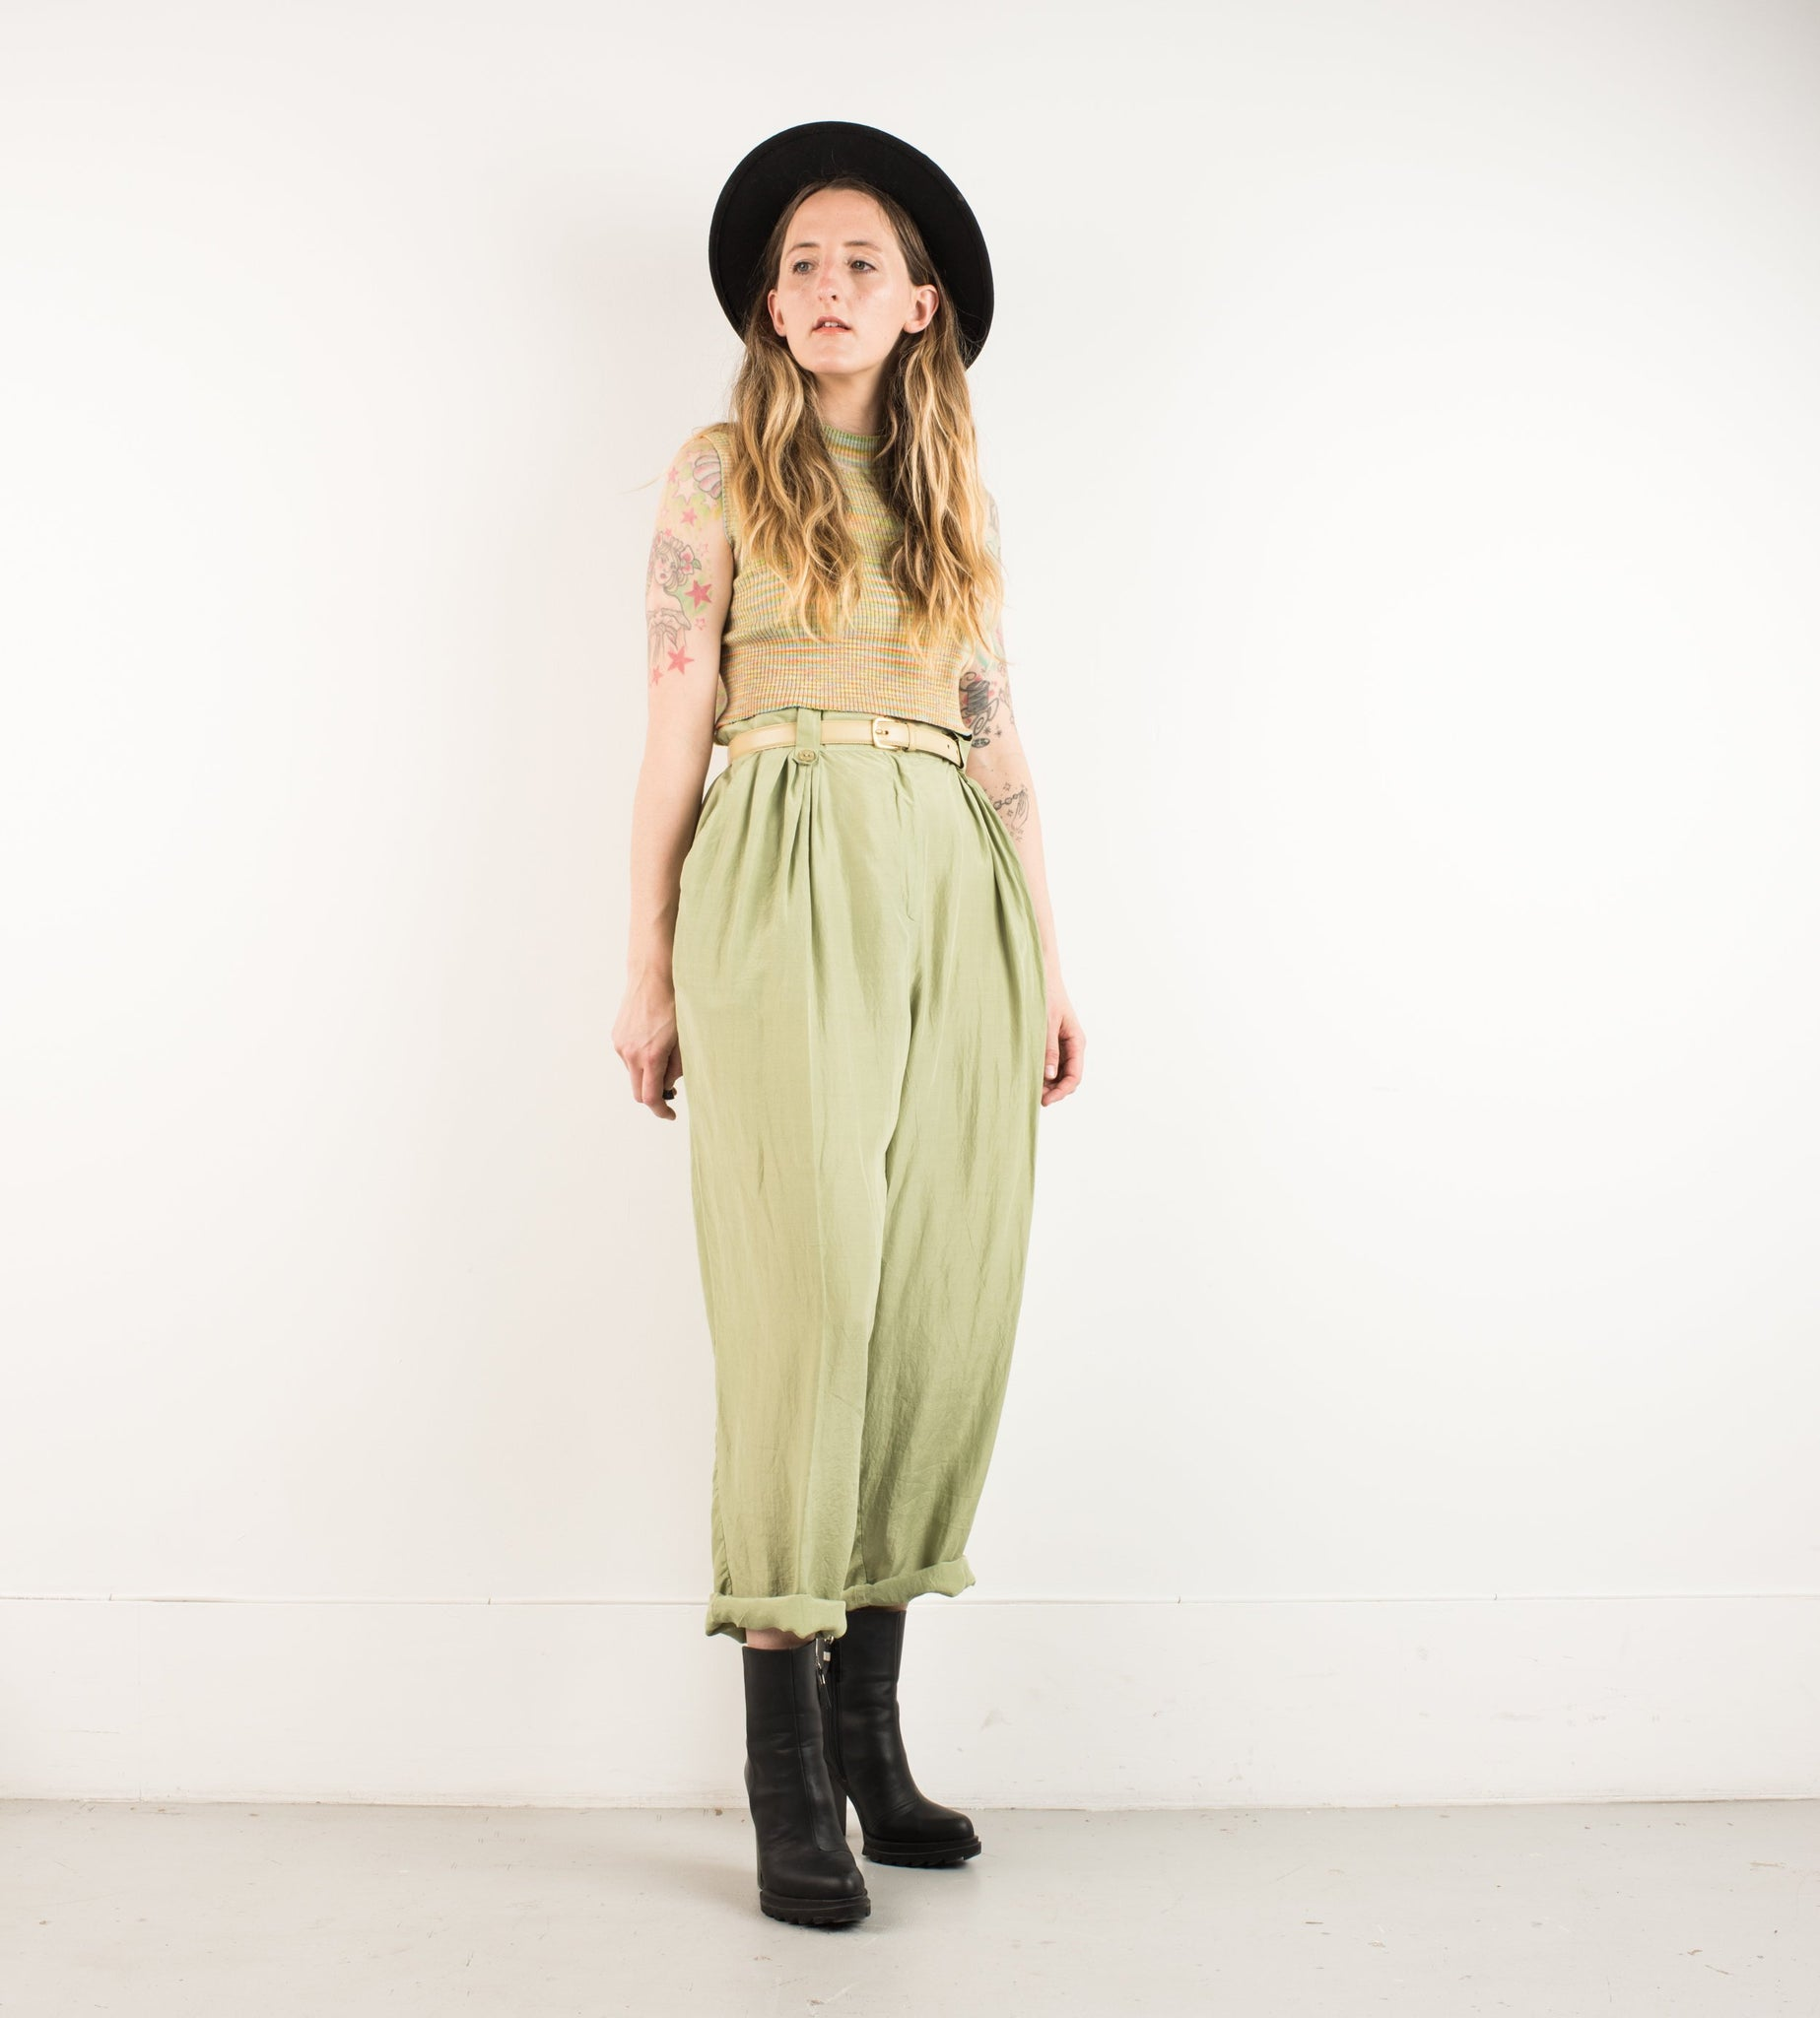 Vintage Green High Waisted Wide Leg Trousers / M/L - Closed Caption